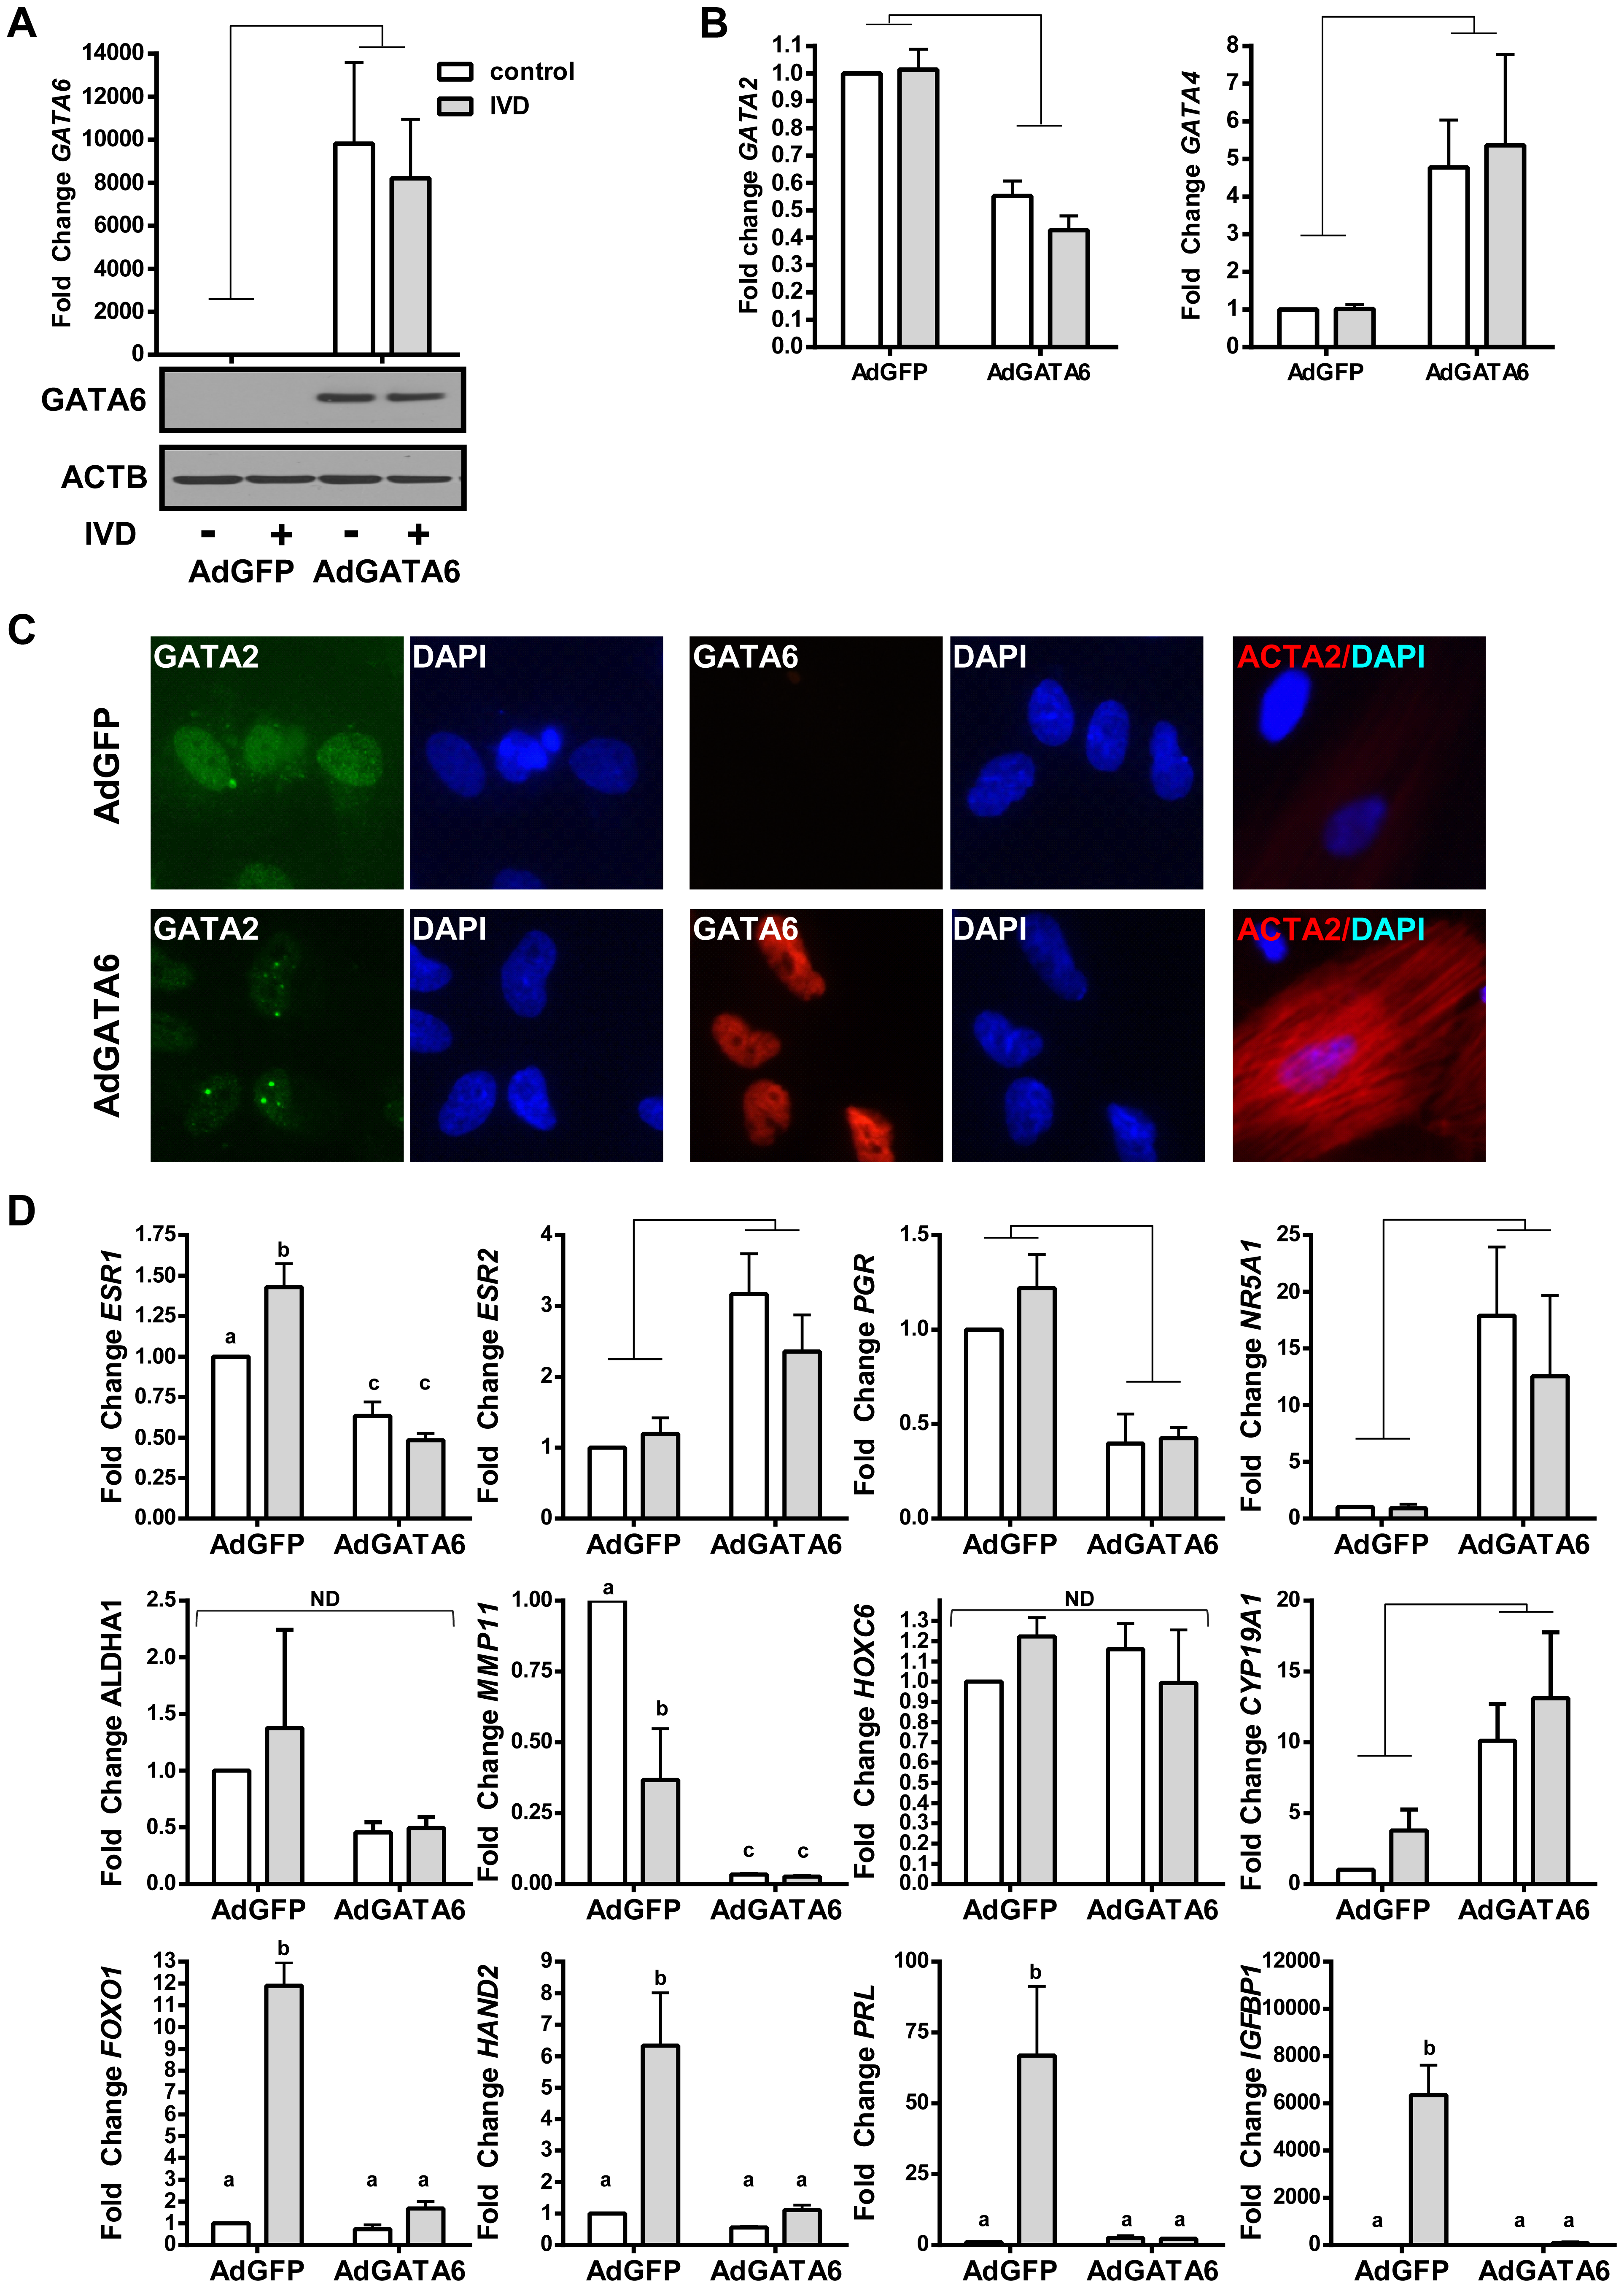 The effects of GATA6 expression in EIUM.